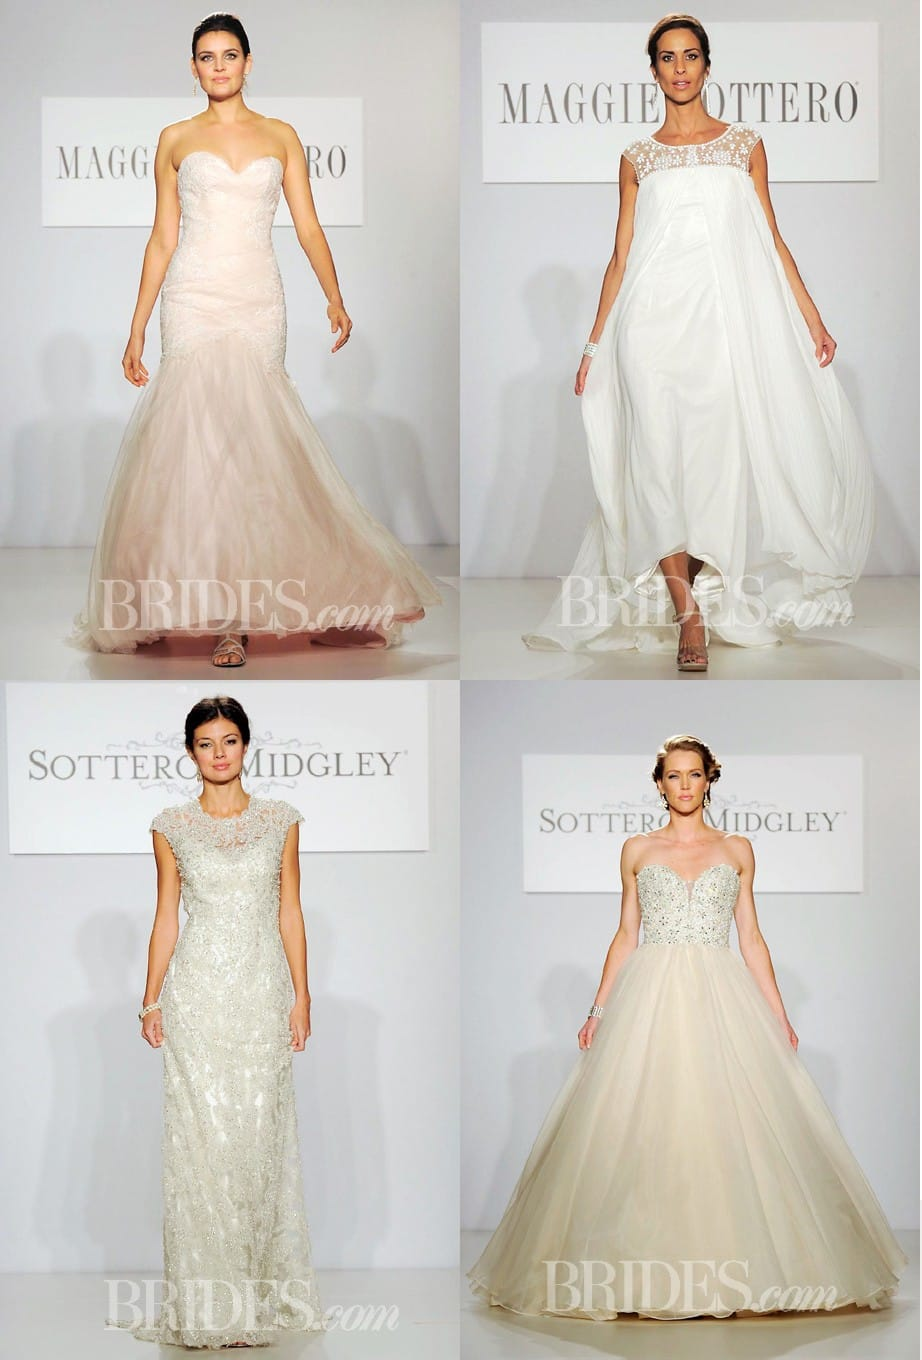 Maggie Sottero's Spring 2014 Collection Debut